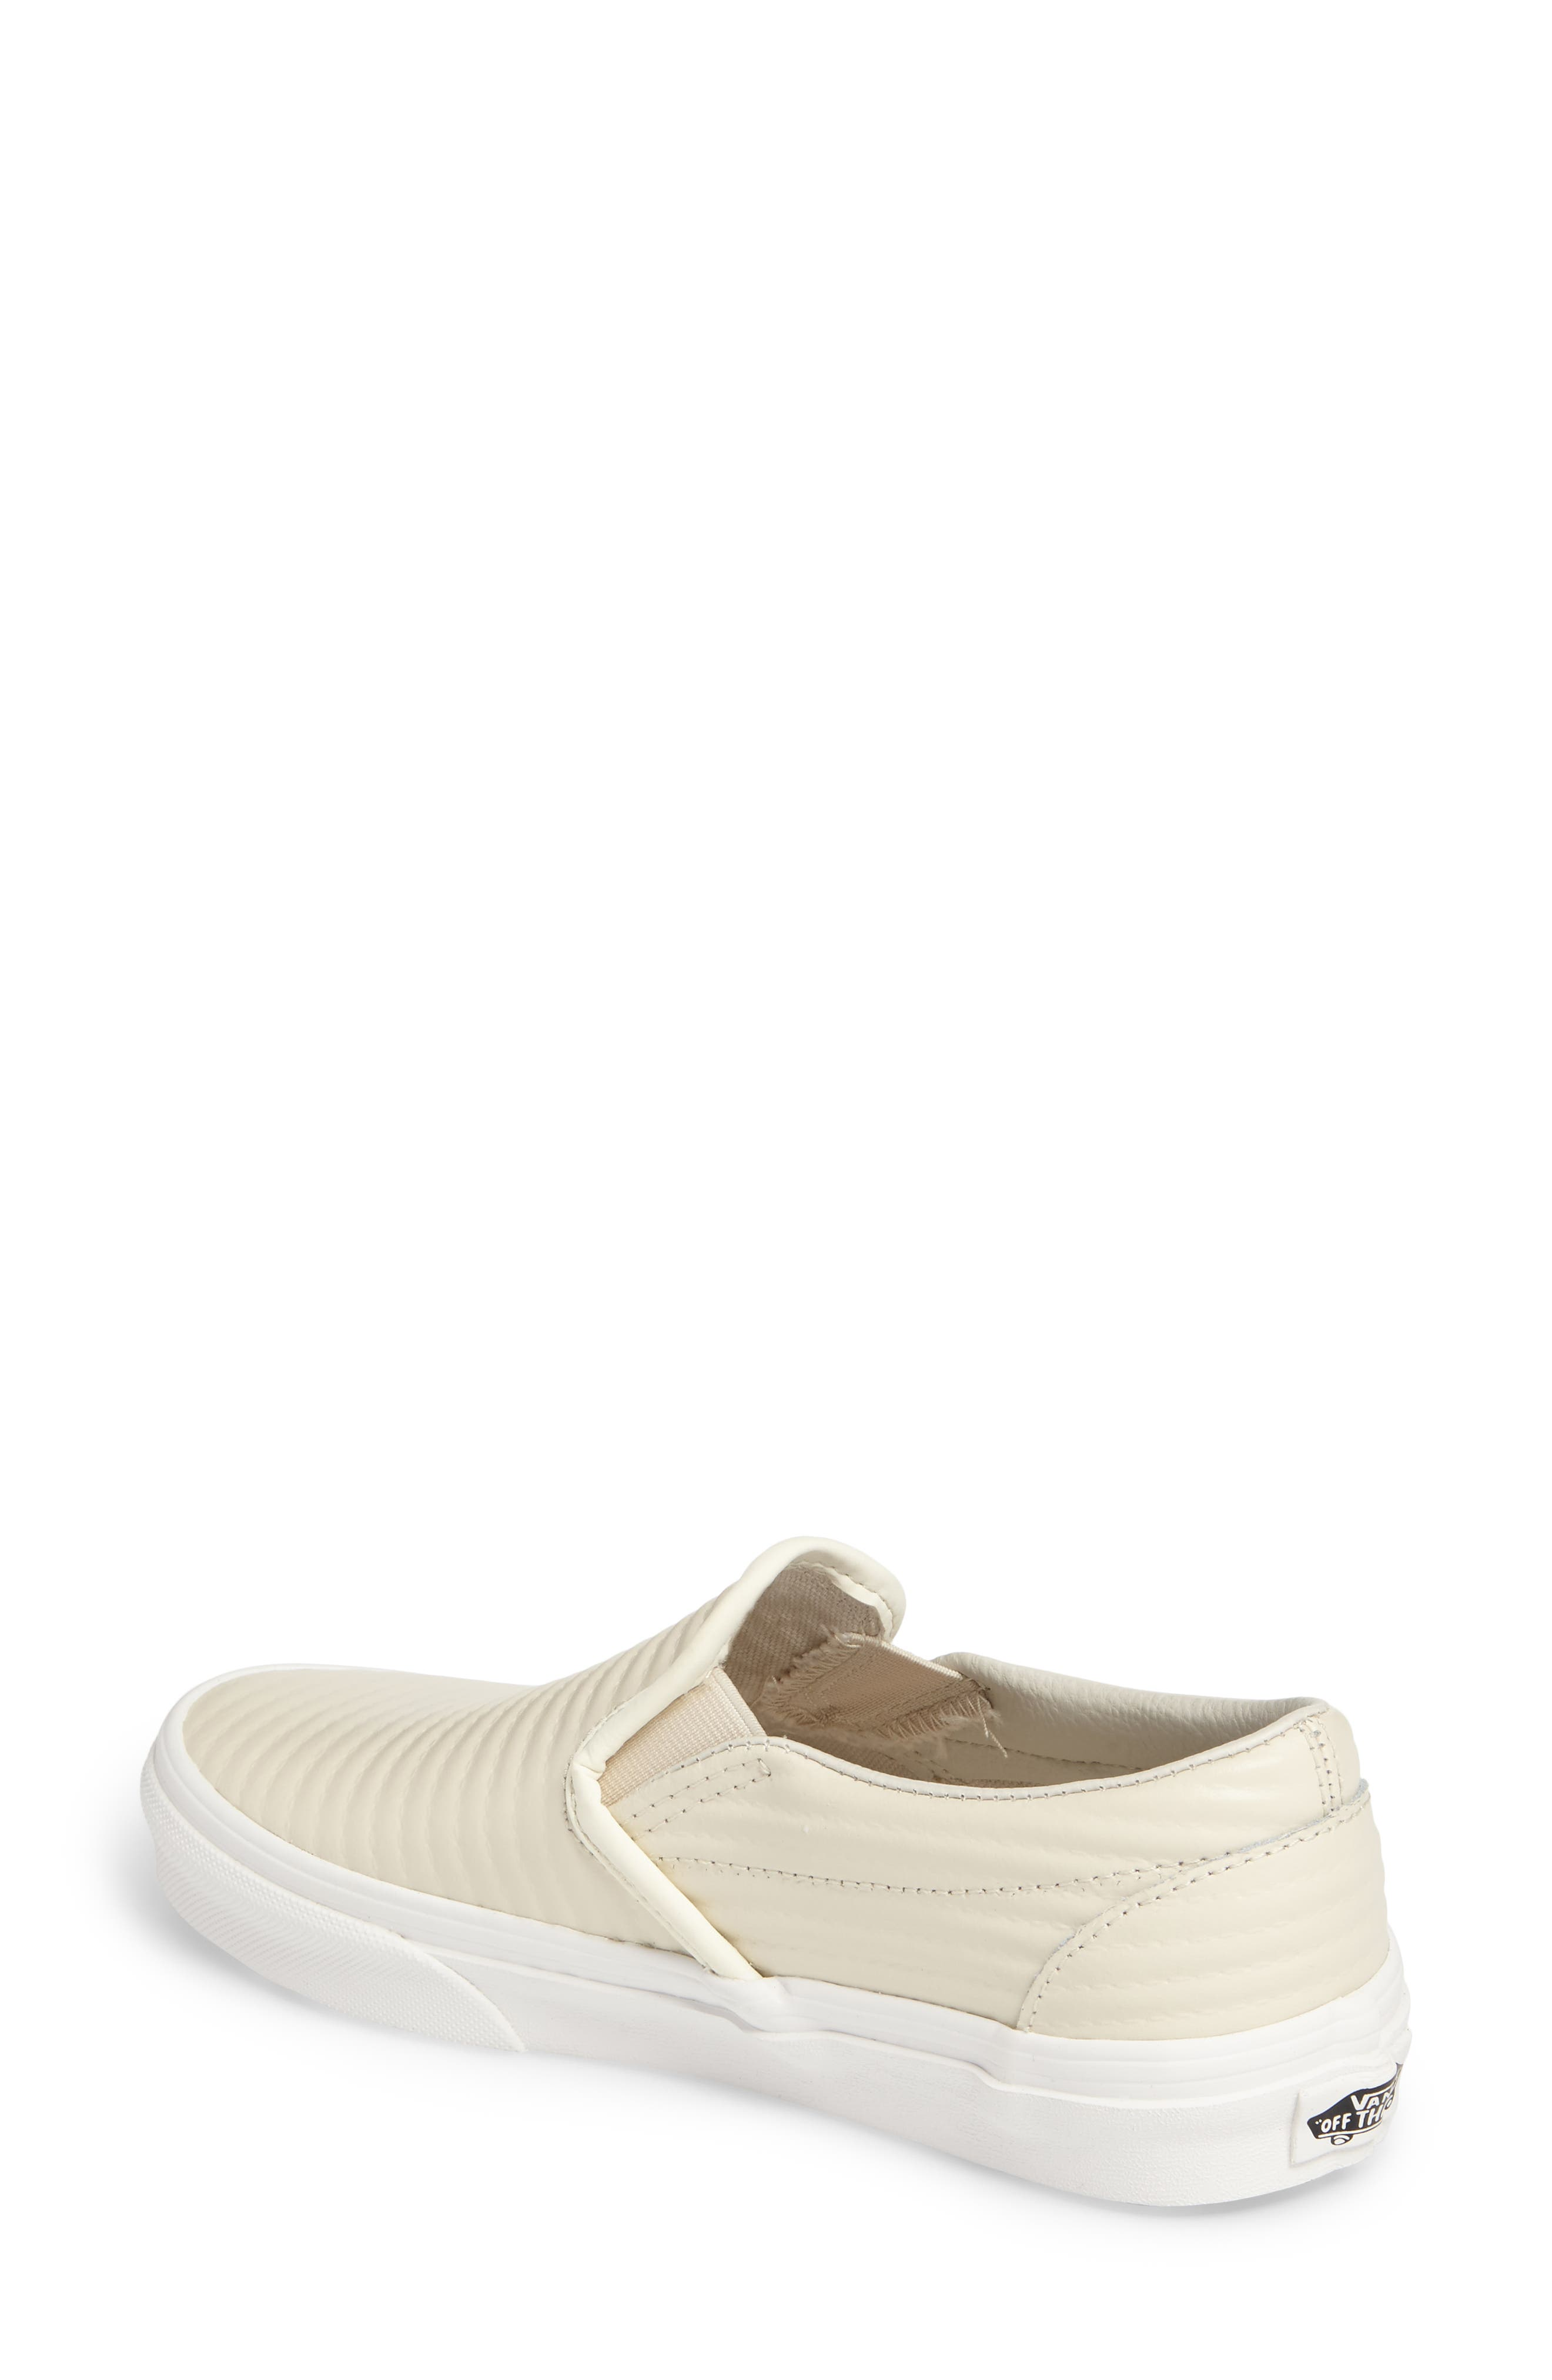 Classic Slip-On Sneaker,                             Alternate thumbnail 149, color,